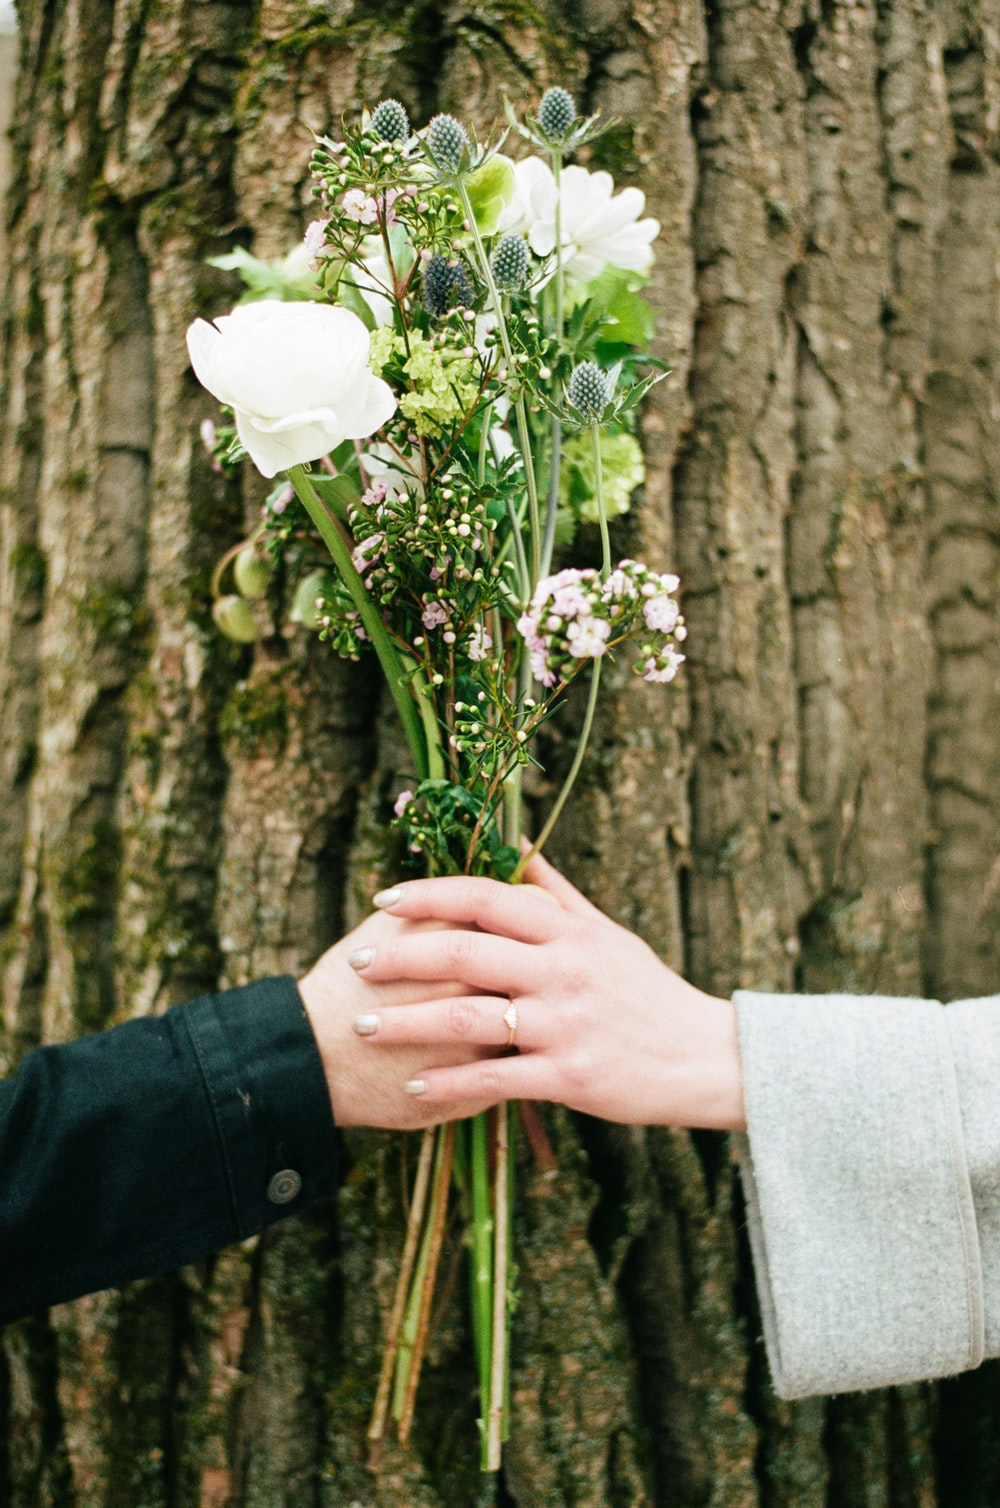 two person holding white rose flowers